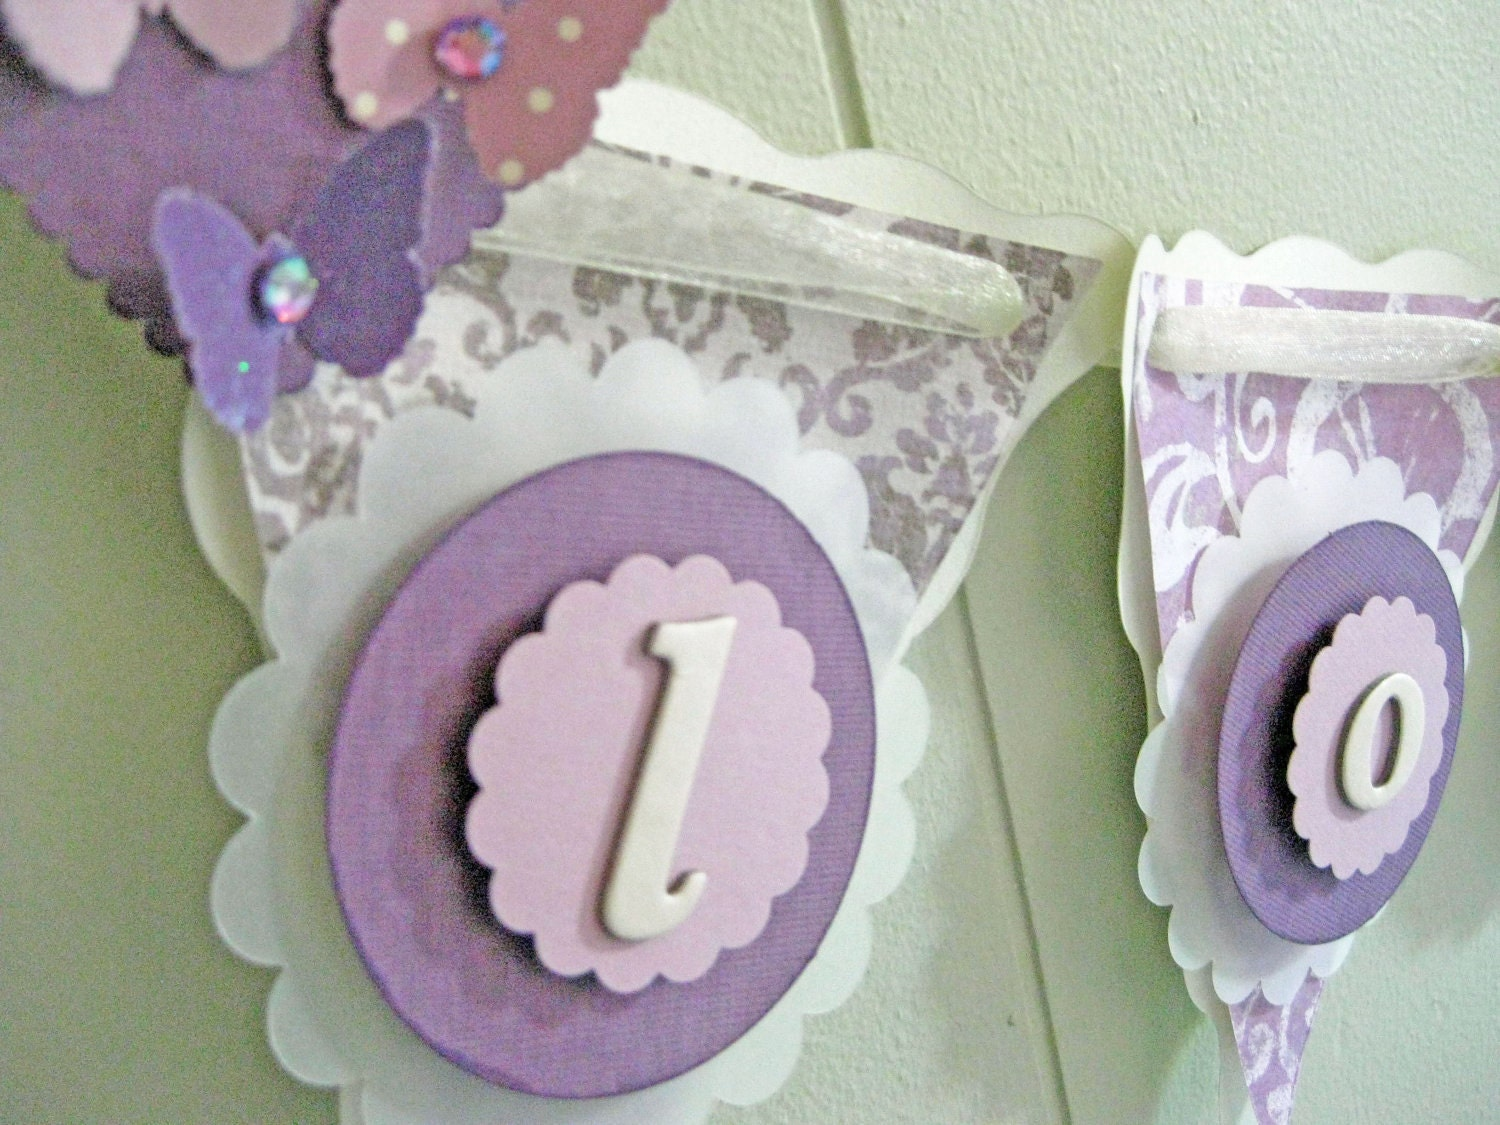 Chandeliers pendant lights - Butterfly themed baby shower favors ...